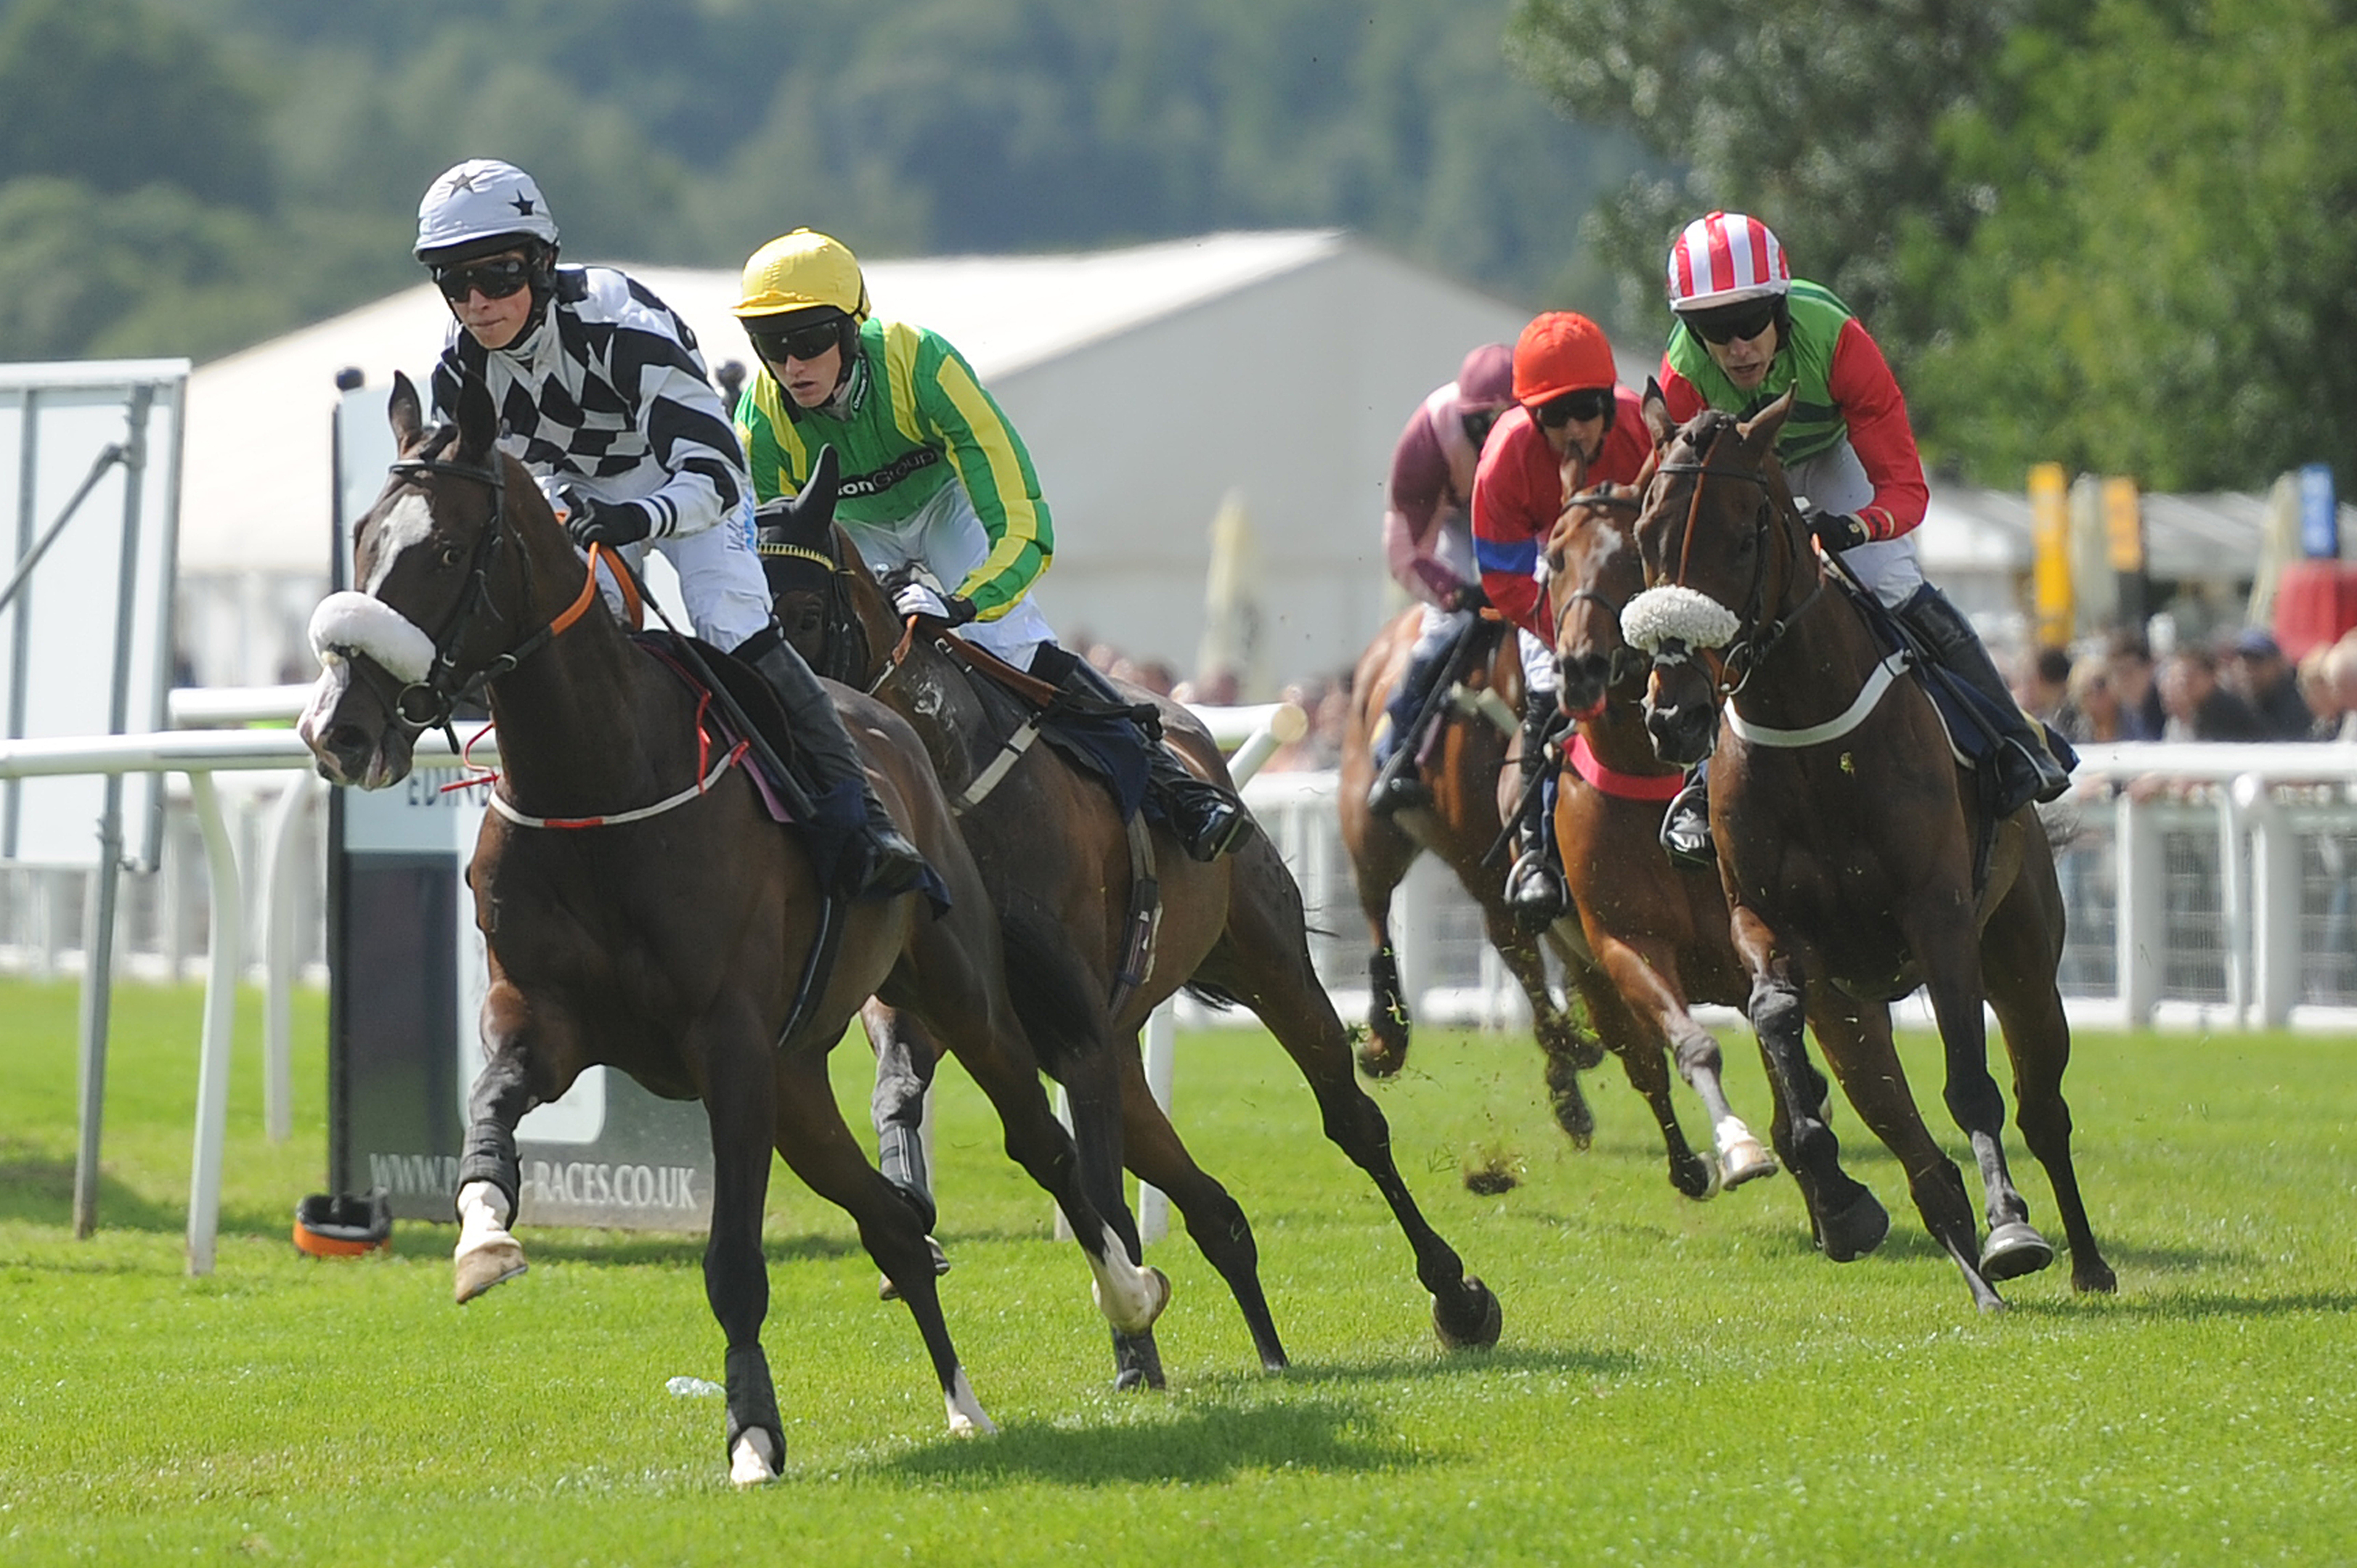 Action from Perth races.